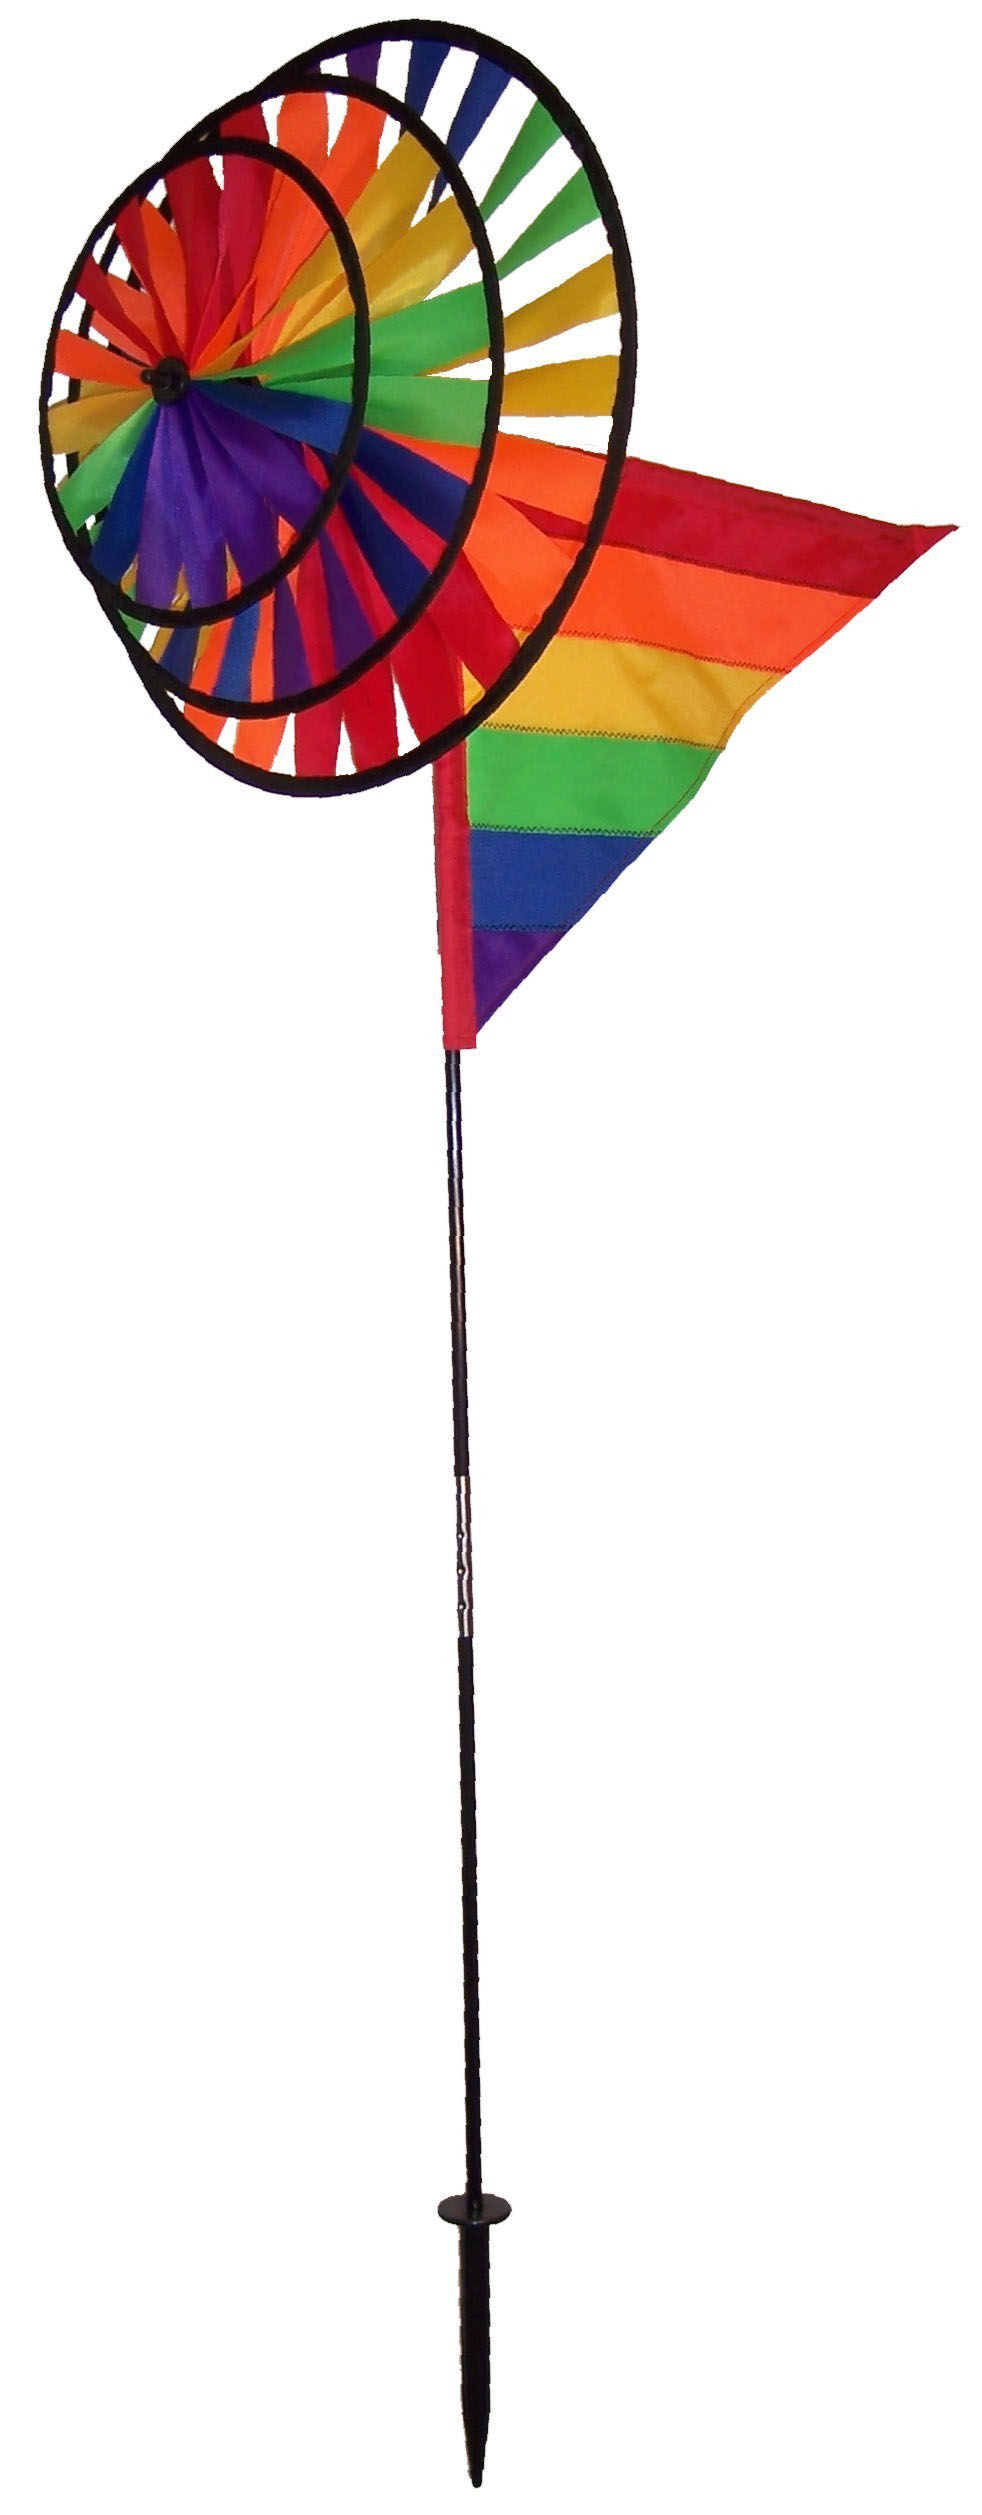 In the Breeze Triple Wheel Rainbow Garden Spinner with Wind Sail